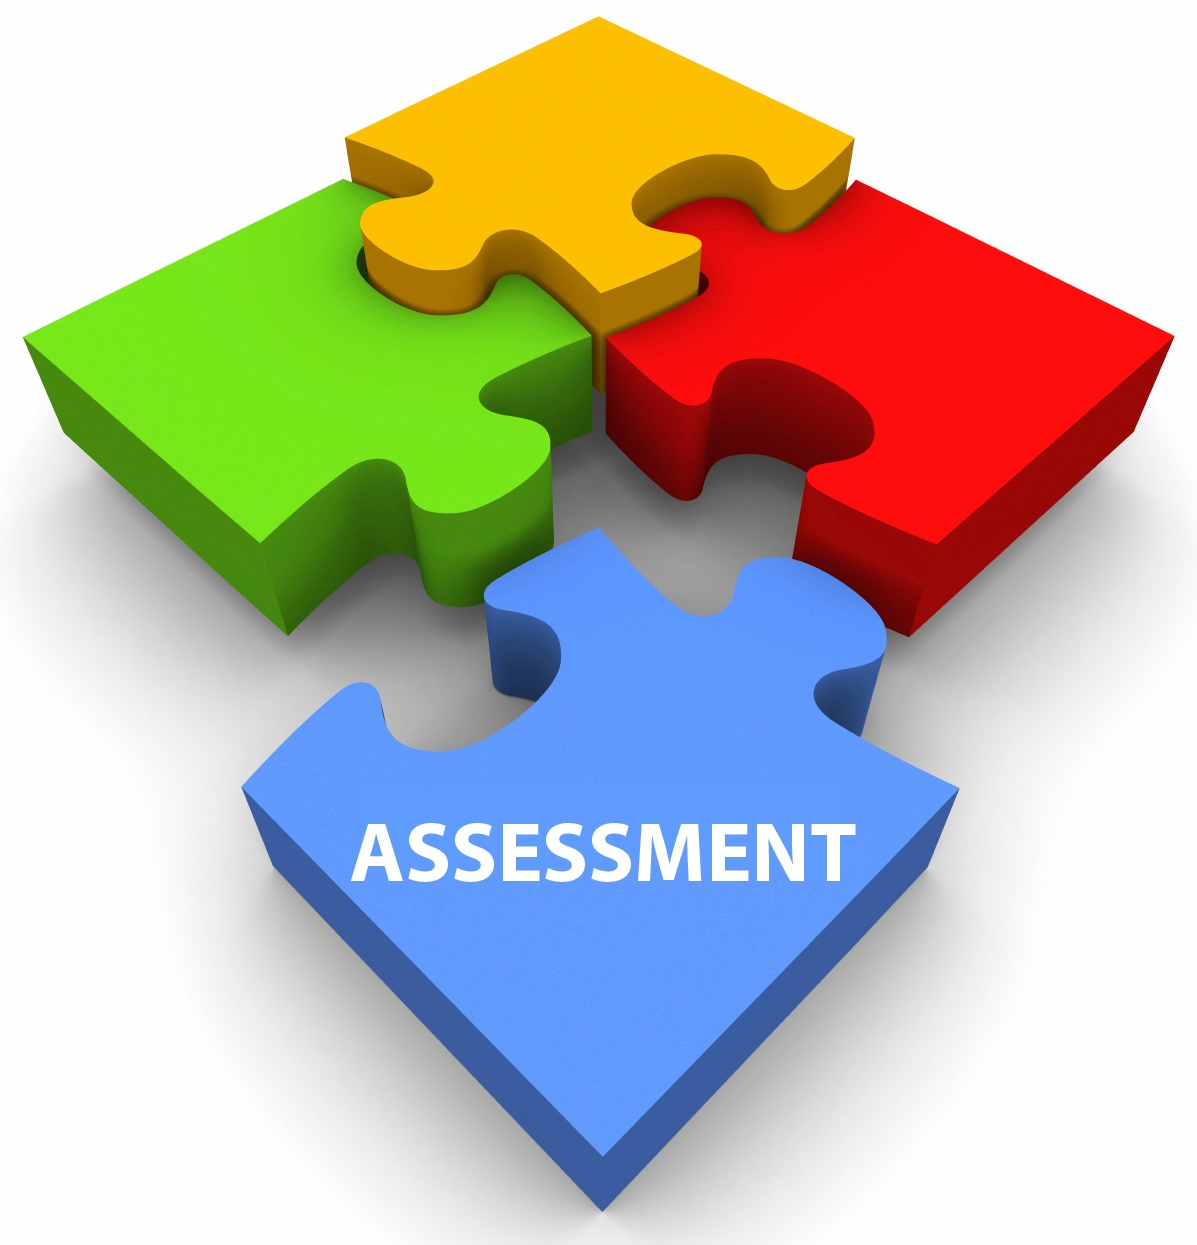 Puzzle-Assessment.jpg